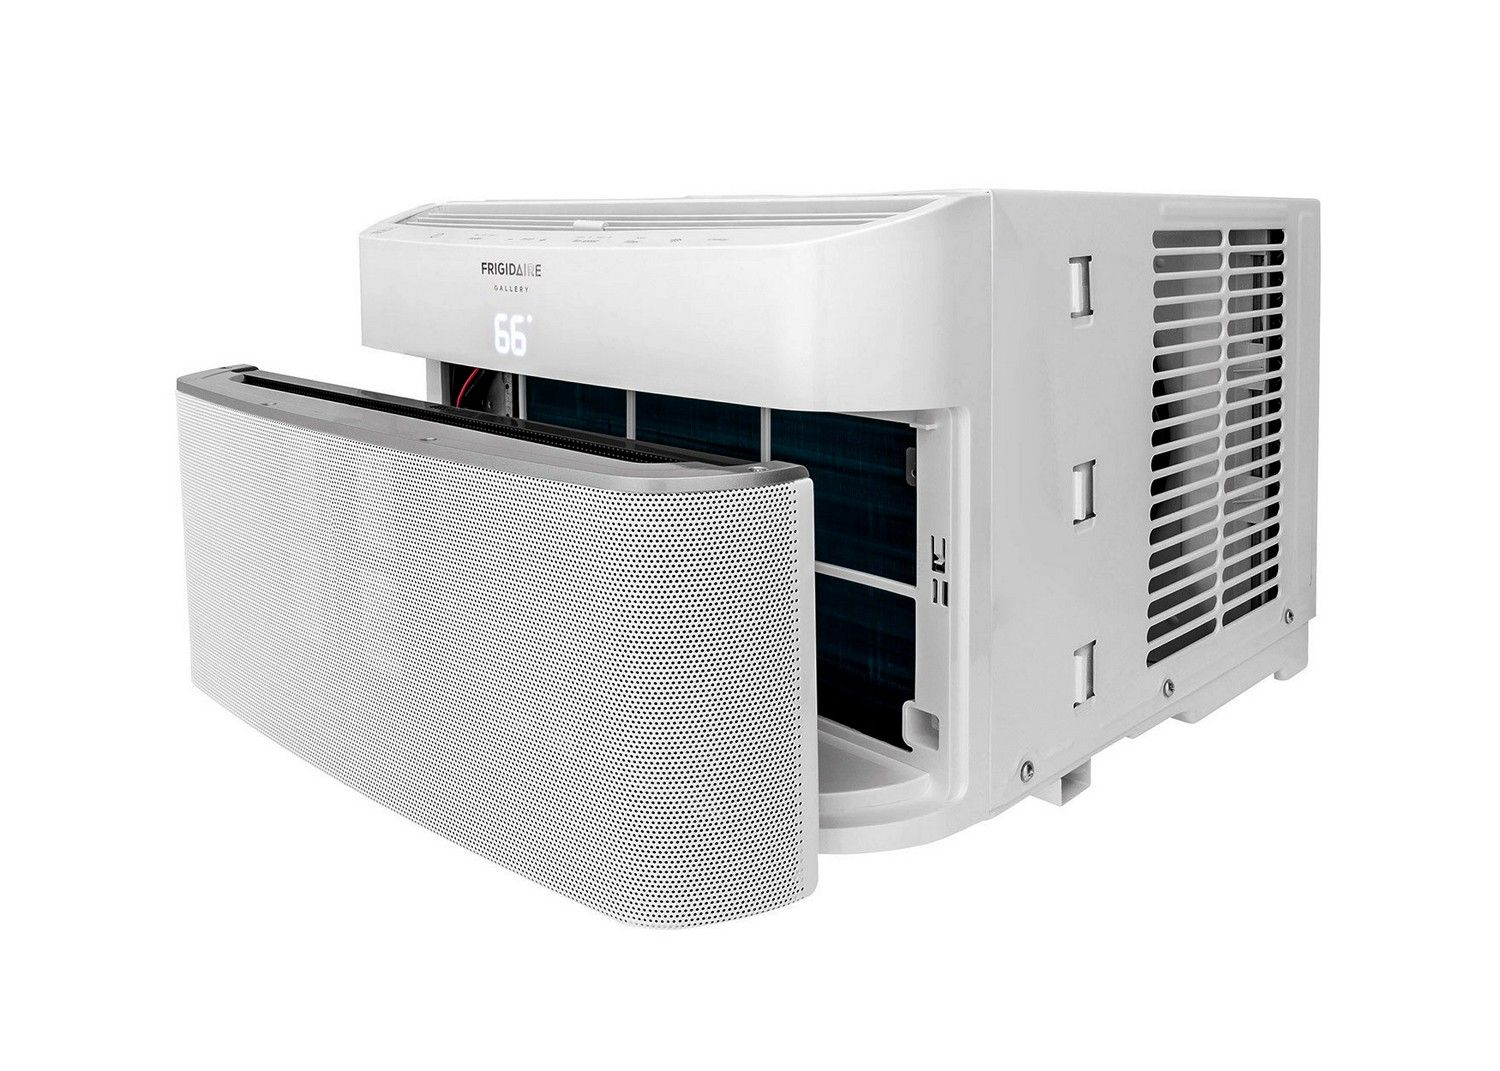 For Room Air Conditioner Reviews Room air conditioner